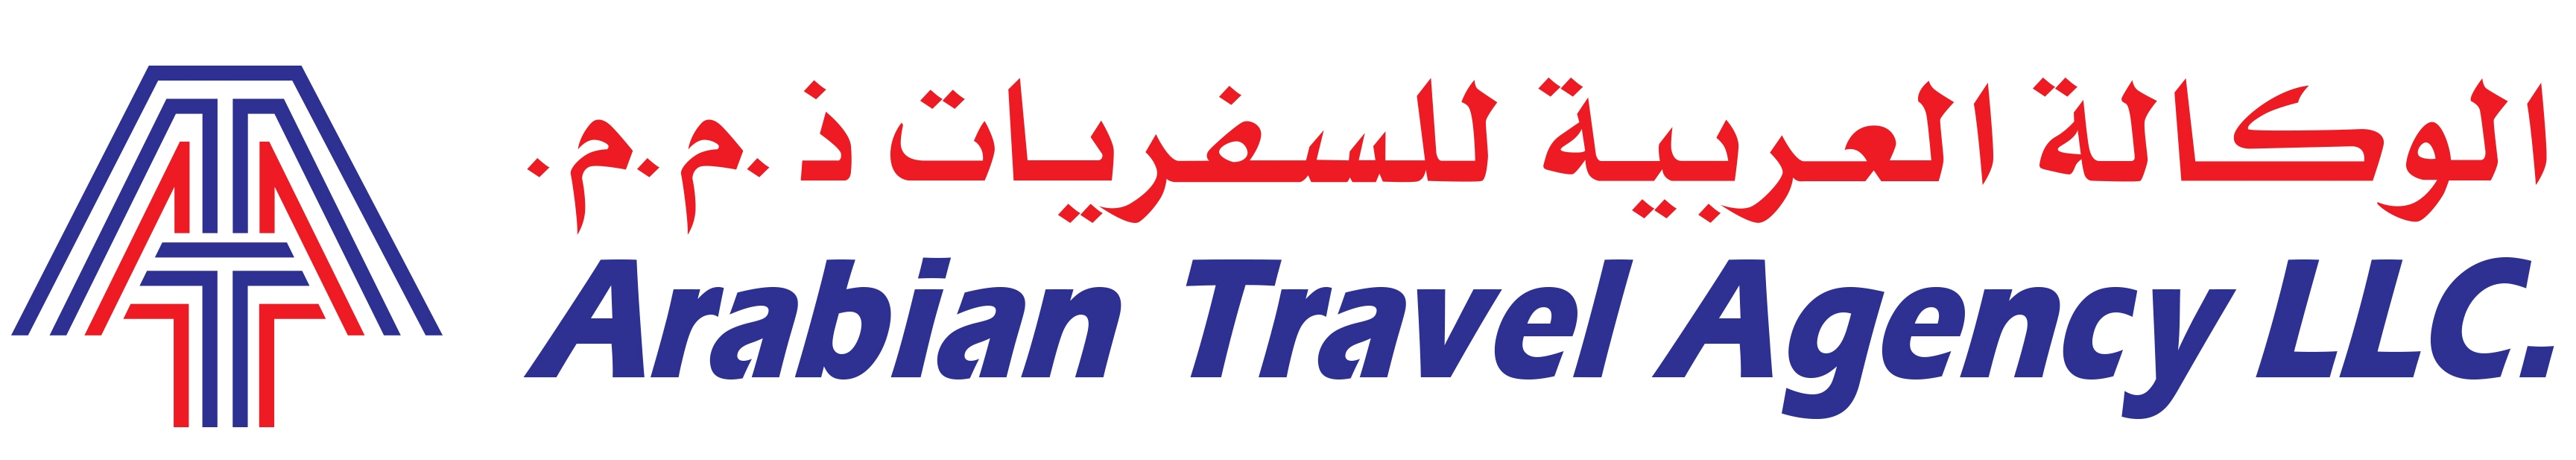 Arabian Travel Agency